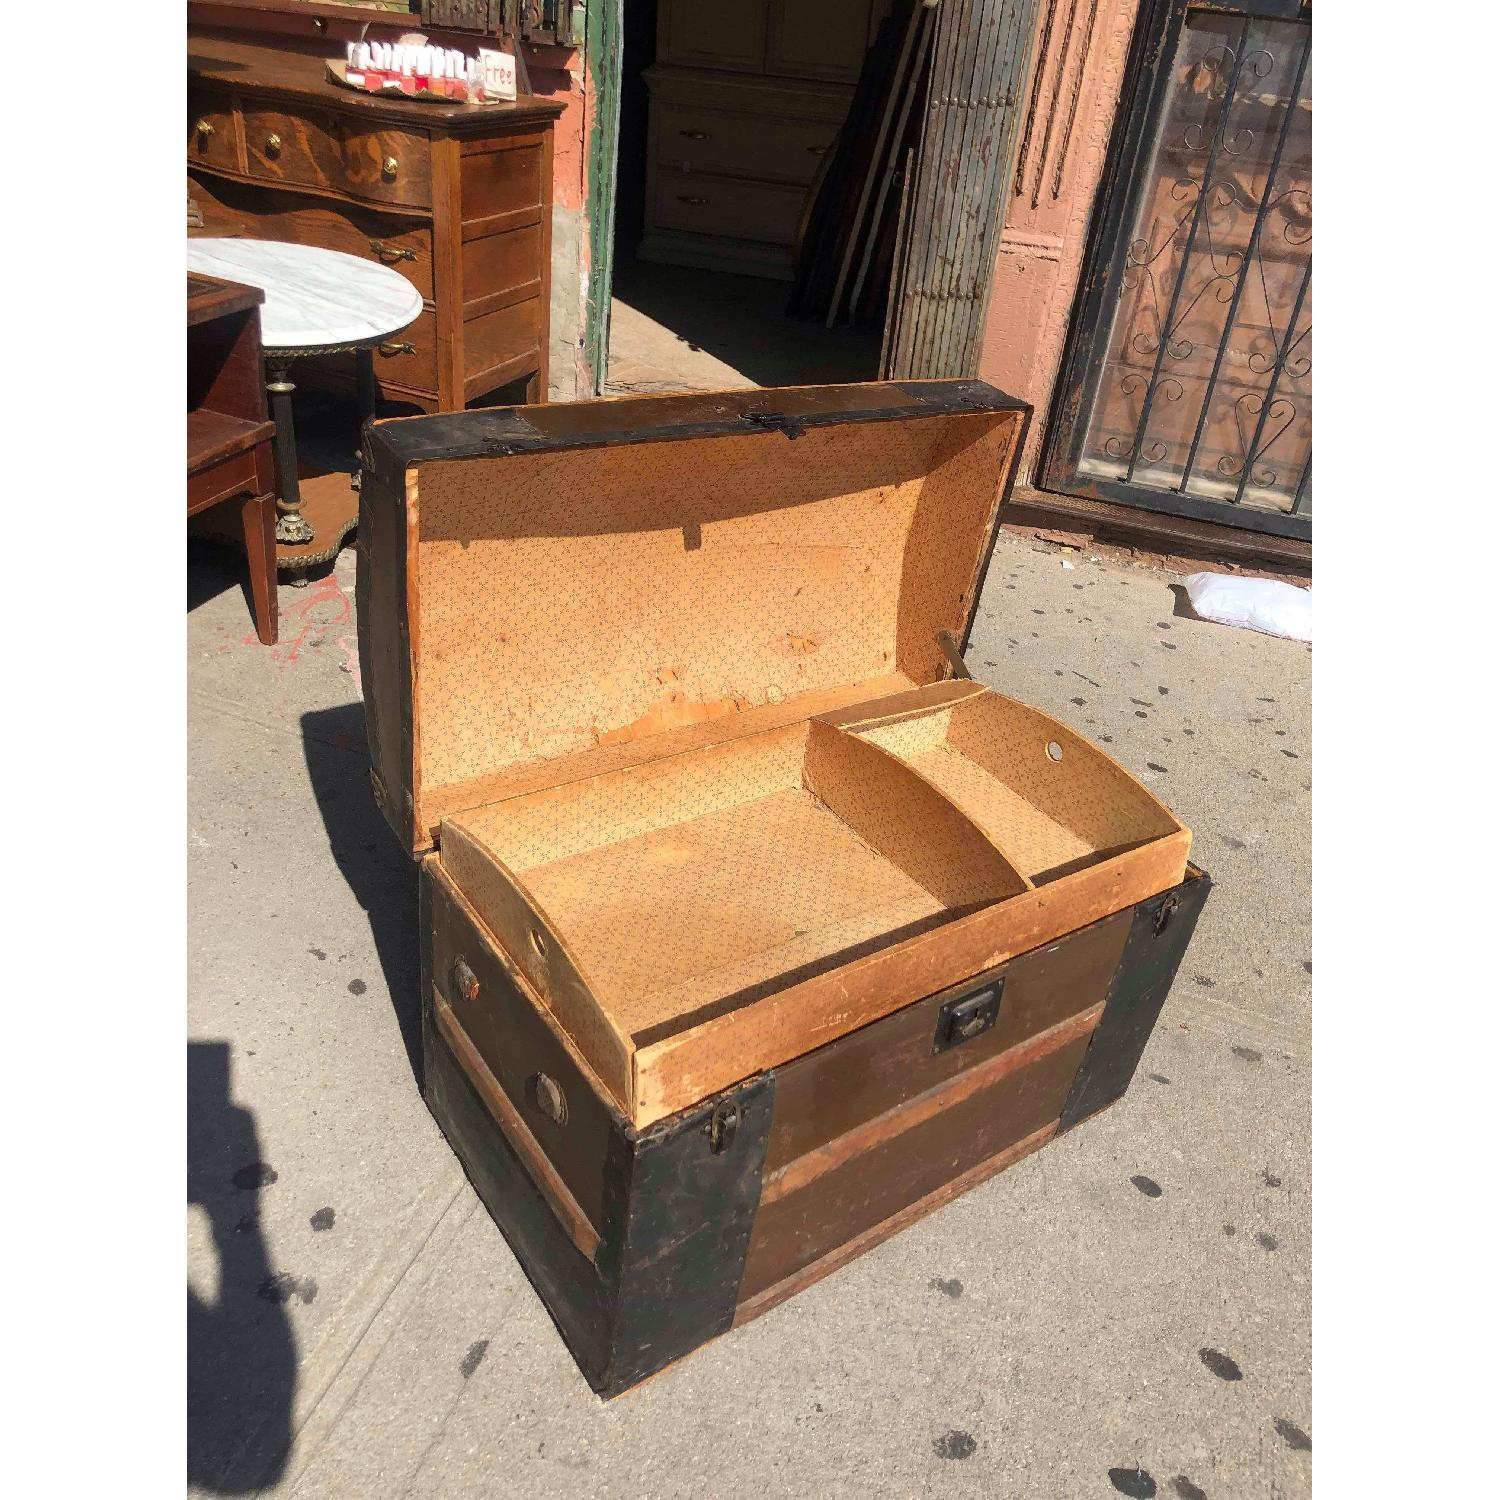 Antique 19th Century Dome Top Storage Trunk w/ Wheels - image-12